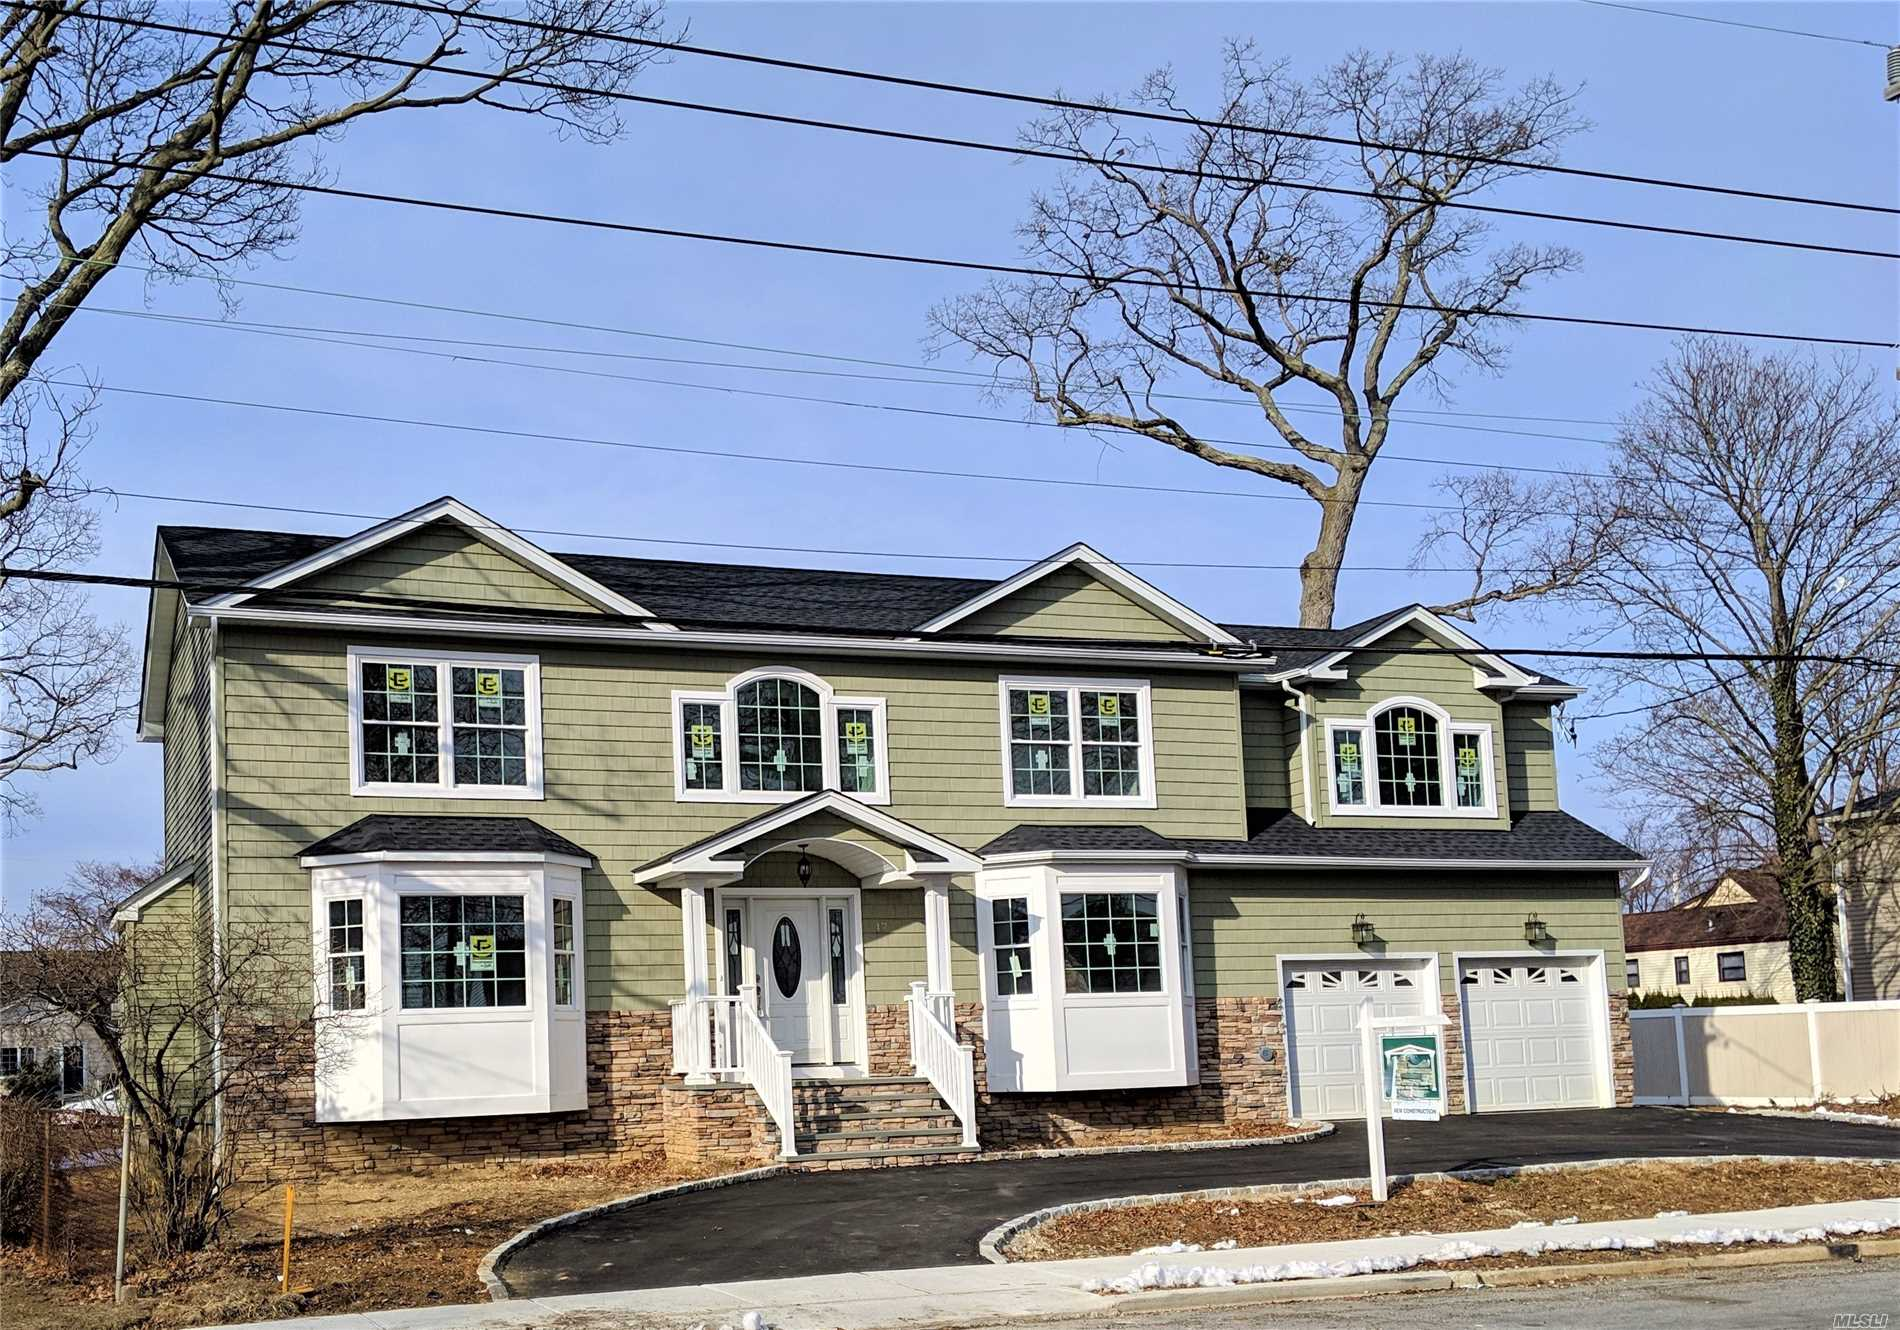 Massapequa Woods Energy Star New Construction In Mass Sd#23. Lg Circular Driveway W/2 Car Gar & Dramatic Circ Staircase In 2 Story Foyer. Quality Workmanship Incl Oak Stairs & Banister In Bsmt, Built Ins By Fpl In Great Rm & Mud Rm & Pella Wndws. Conv To Rr & Major Roadways On A Mid Block Location. Dream Of A Mastr Suite W/Large Wic, Dbl Closet & Fbth. Laundry On 2nd Floor. Black Stainless Samsung Appl Inc French Door Fridge. Stainless Farm Sink. 2Zn Gas Heat & Cac. Near Completion, Occ Flex.